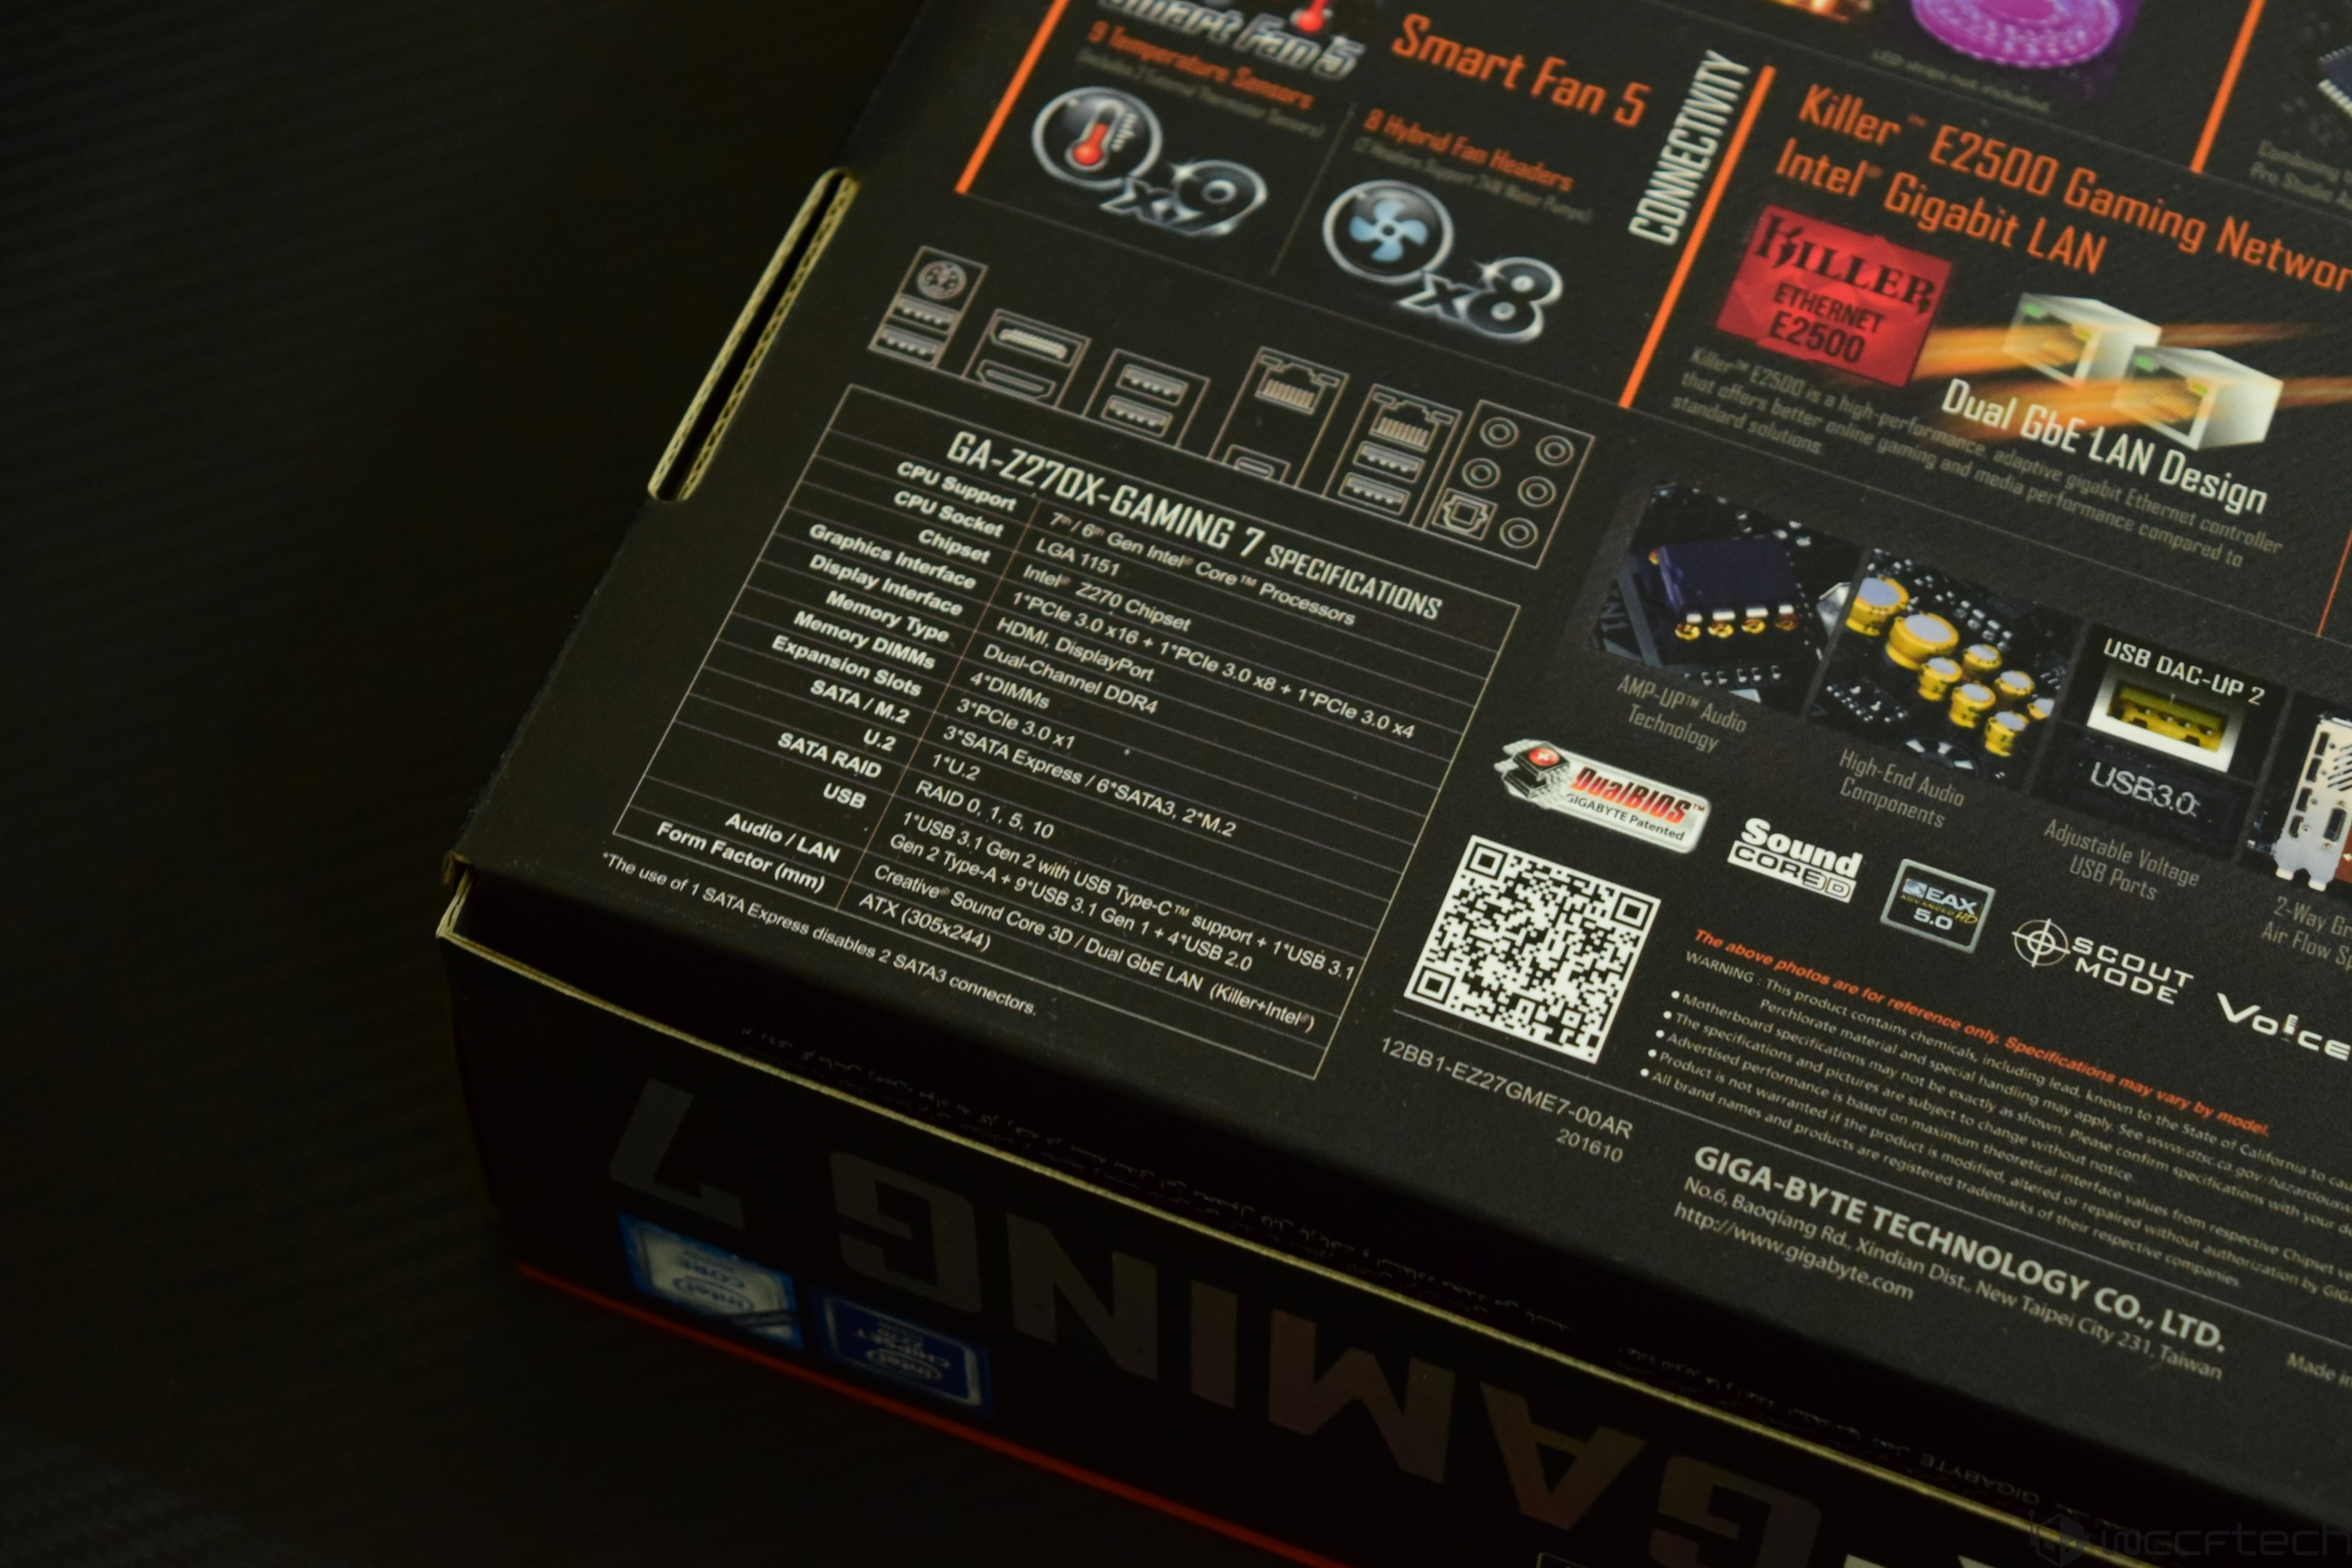 How To Use Dual Bios On Gigabyte